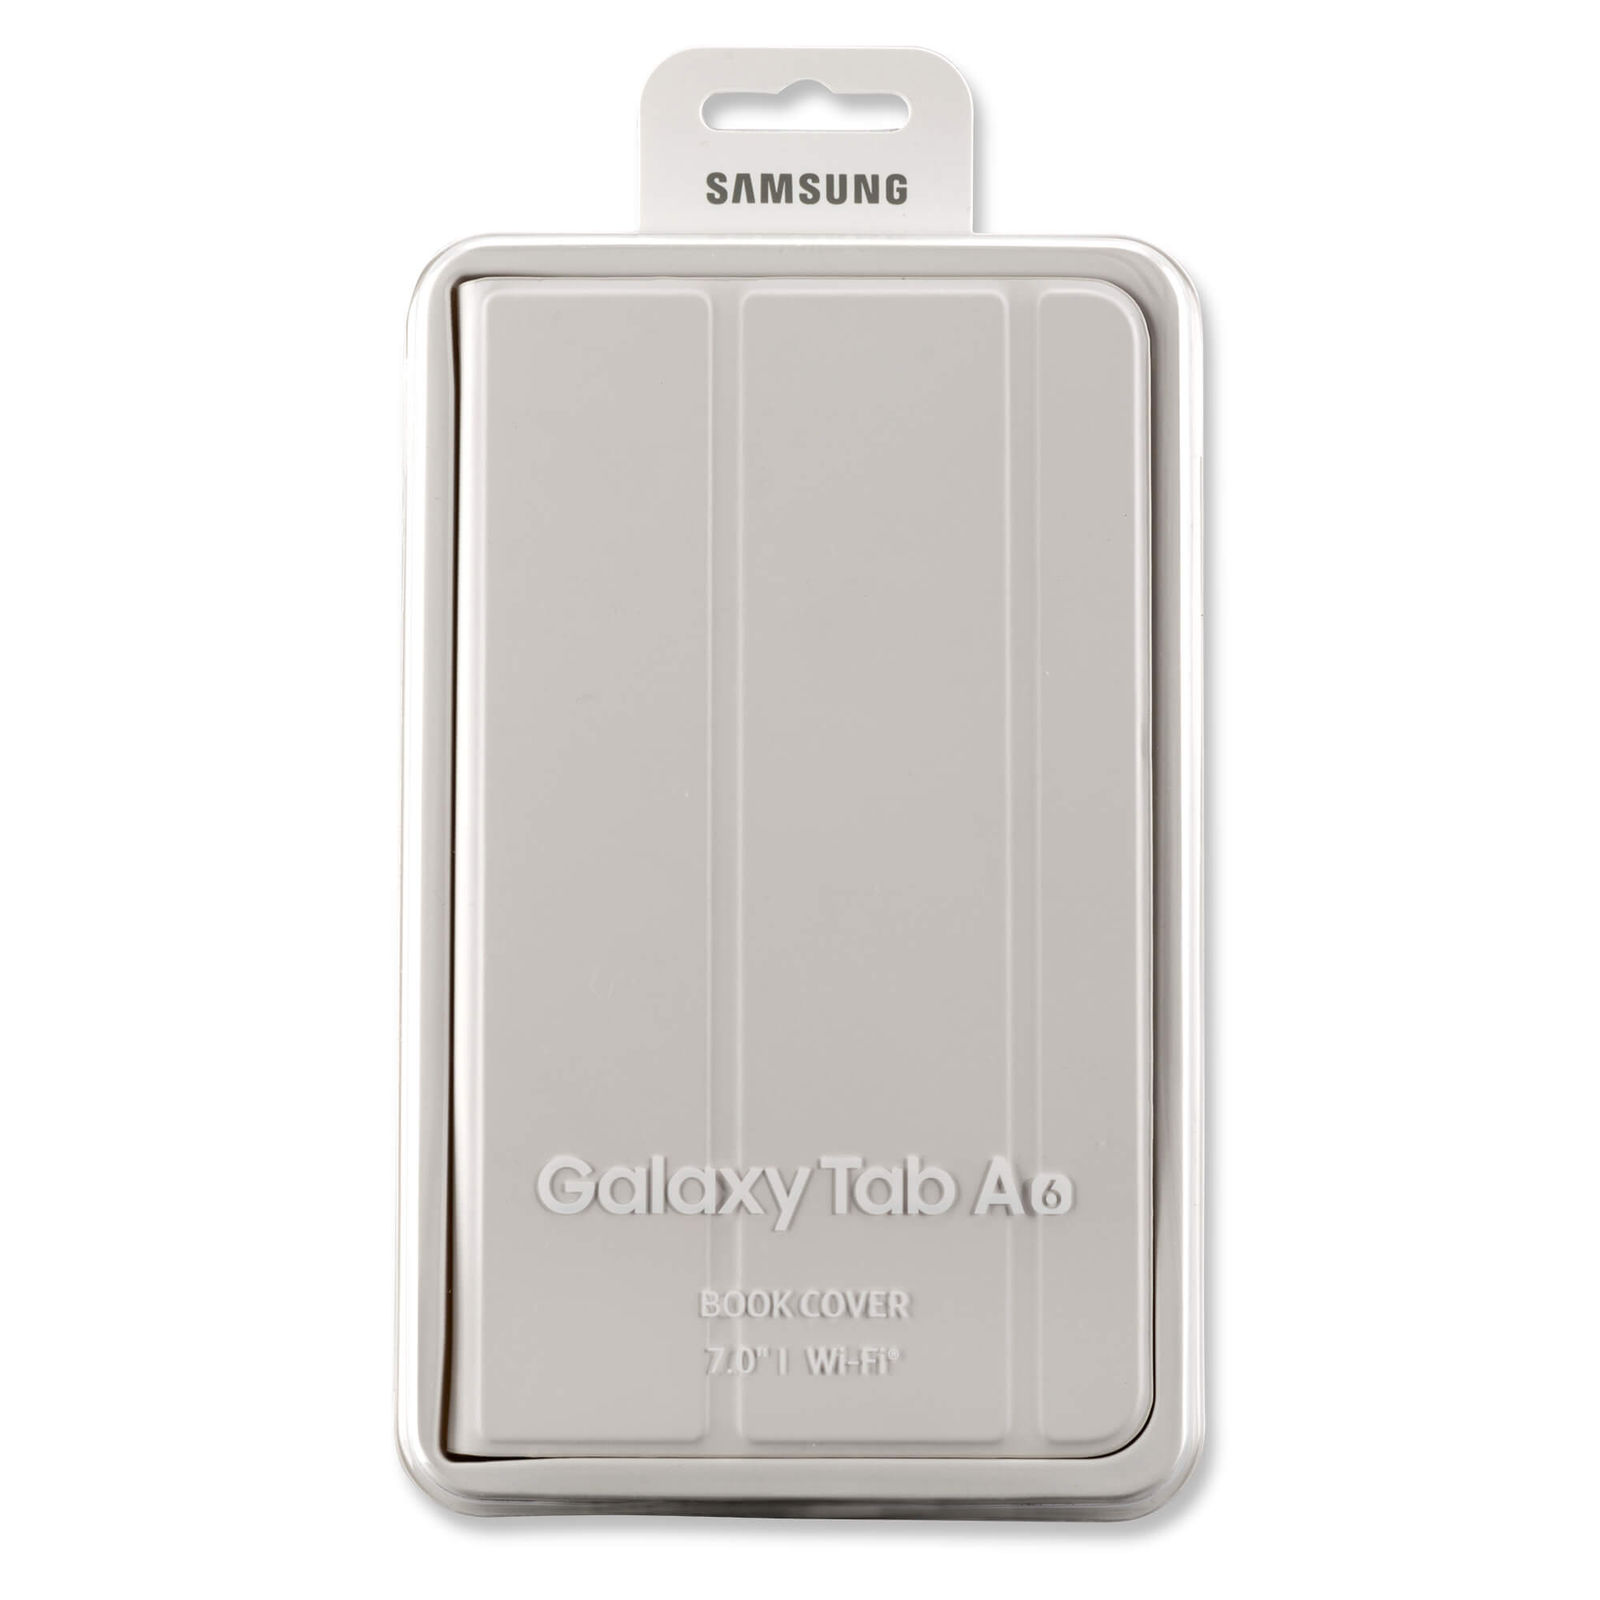 Samsung Book Cover Tab A White ~ Samsung book cover ef bt pw for galaxy tab a